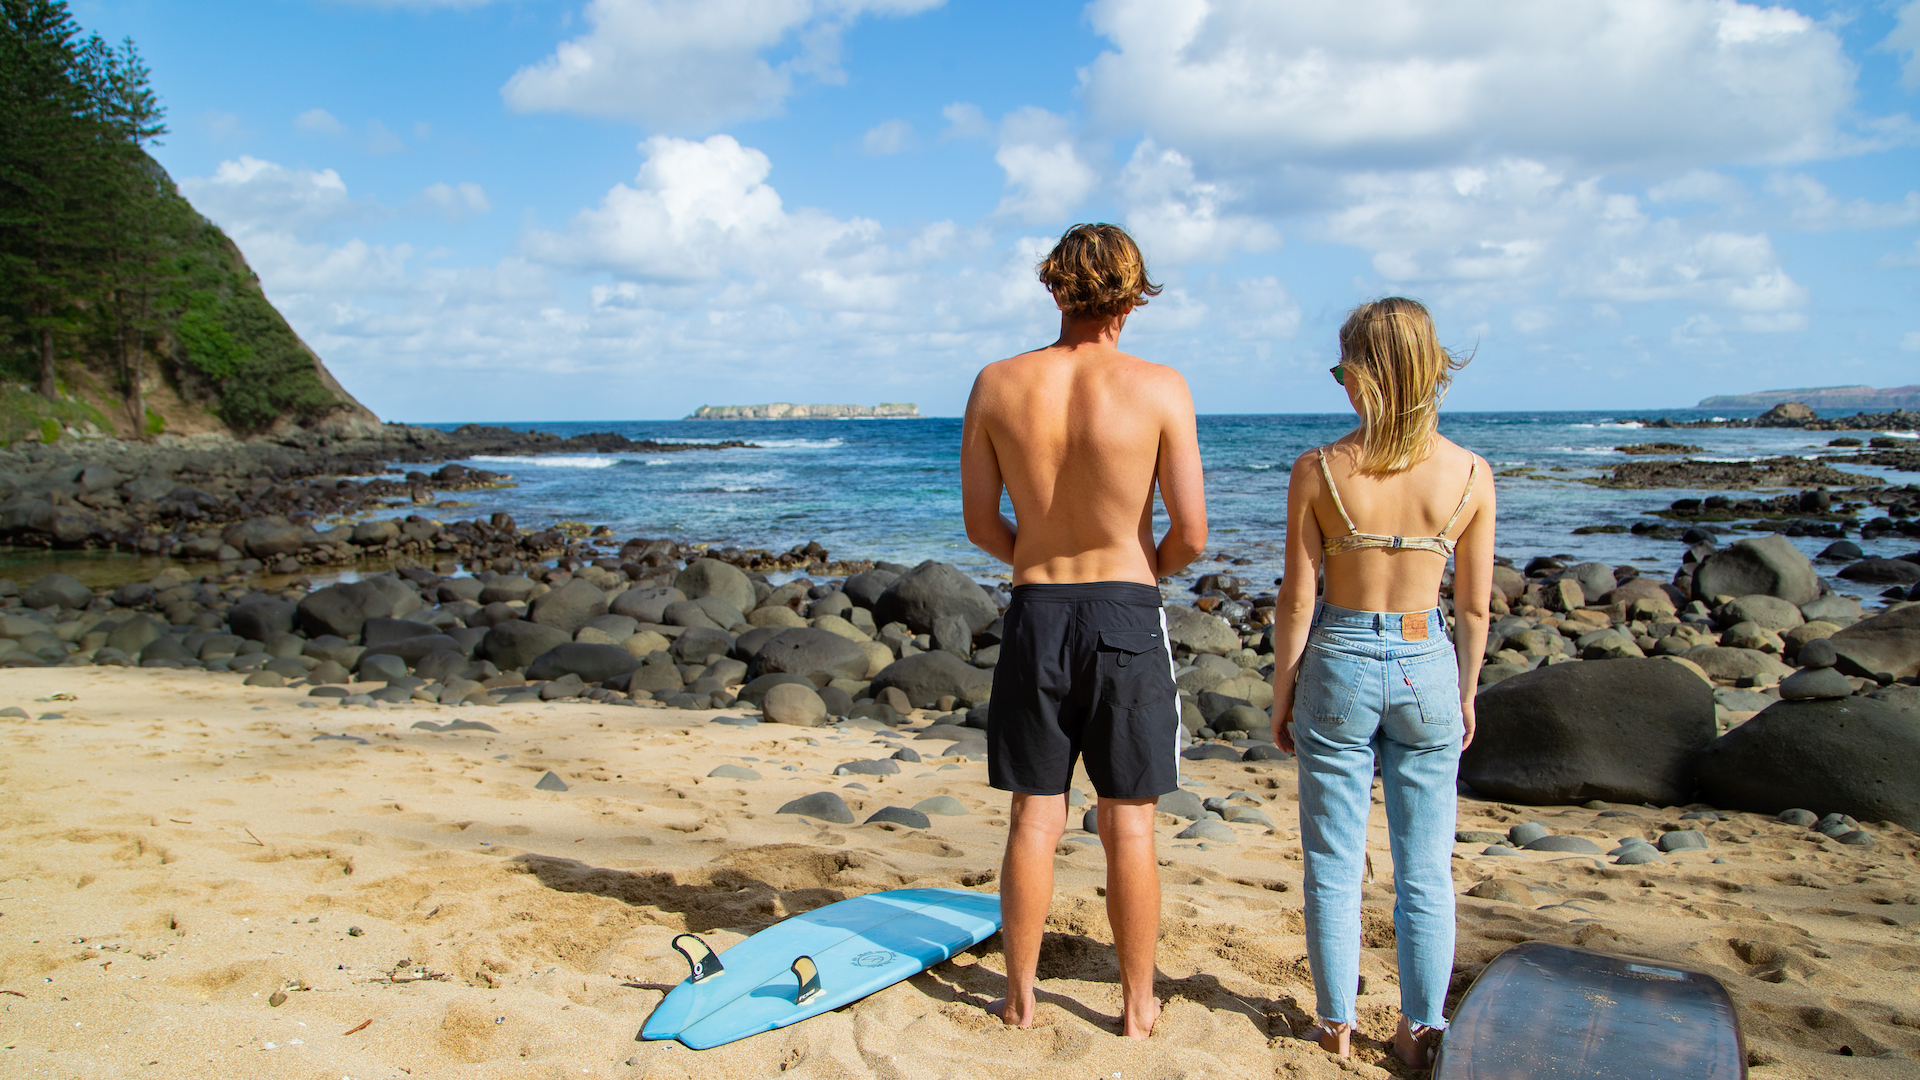 Boy in board shorts and girl in bikini top and jeans stand on beach, staring out at ocean with surfboards at their sides.